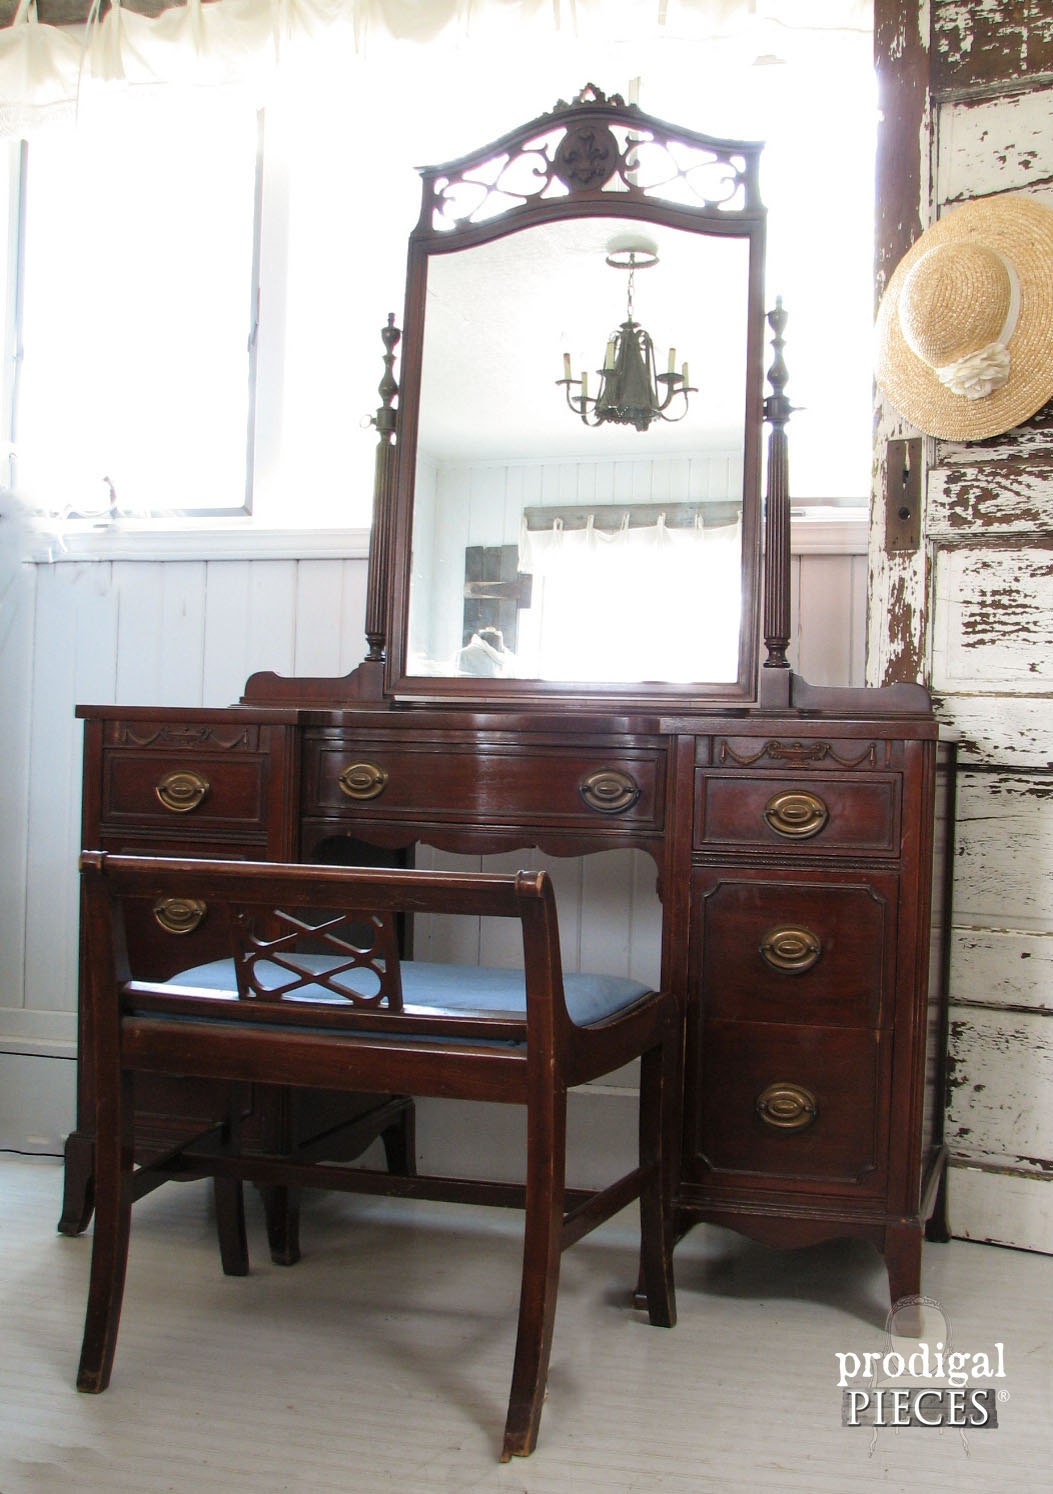 Ornate vintage dressing table vanity with gorgeous mirror